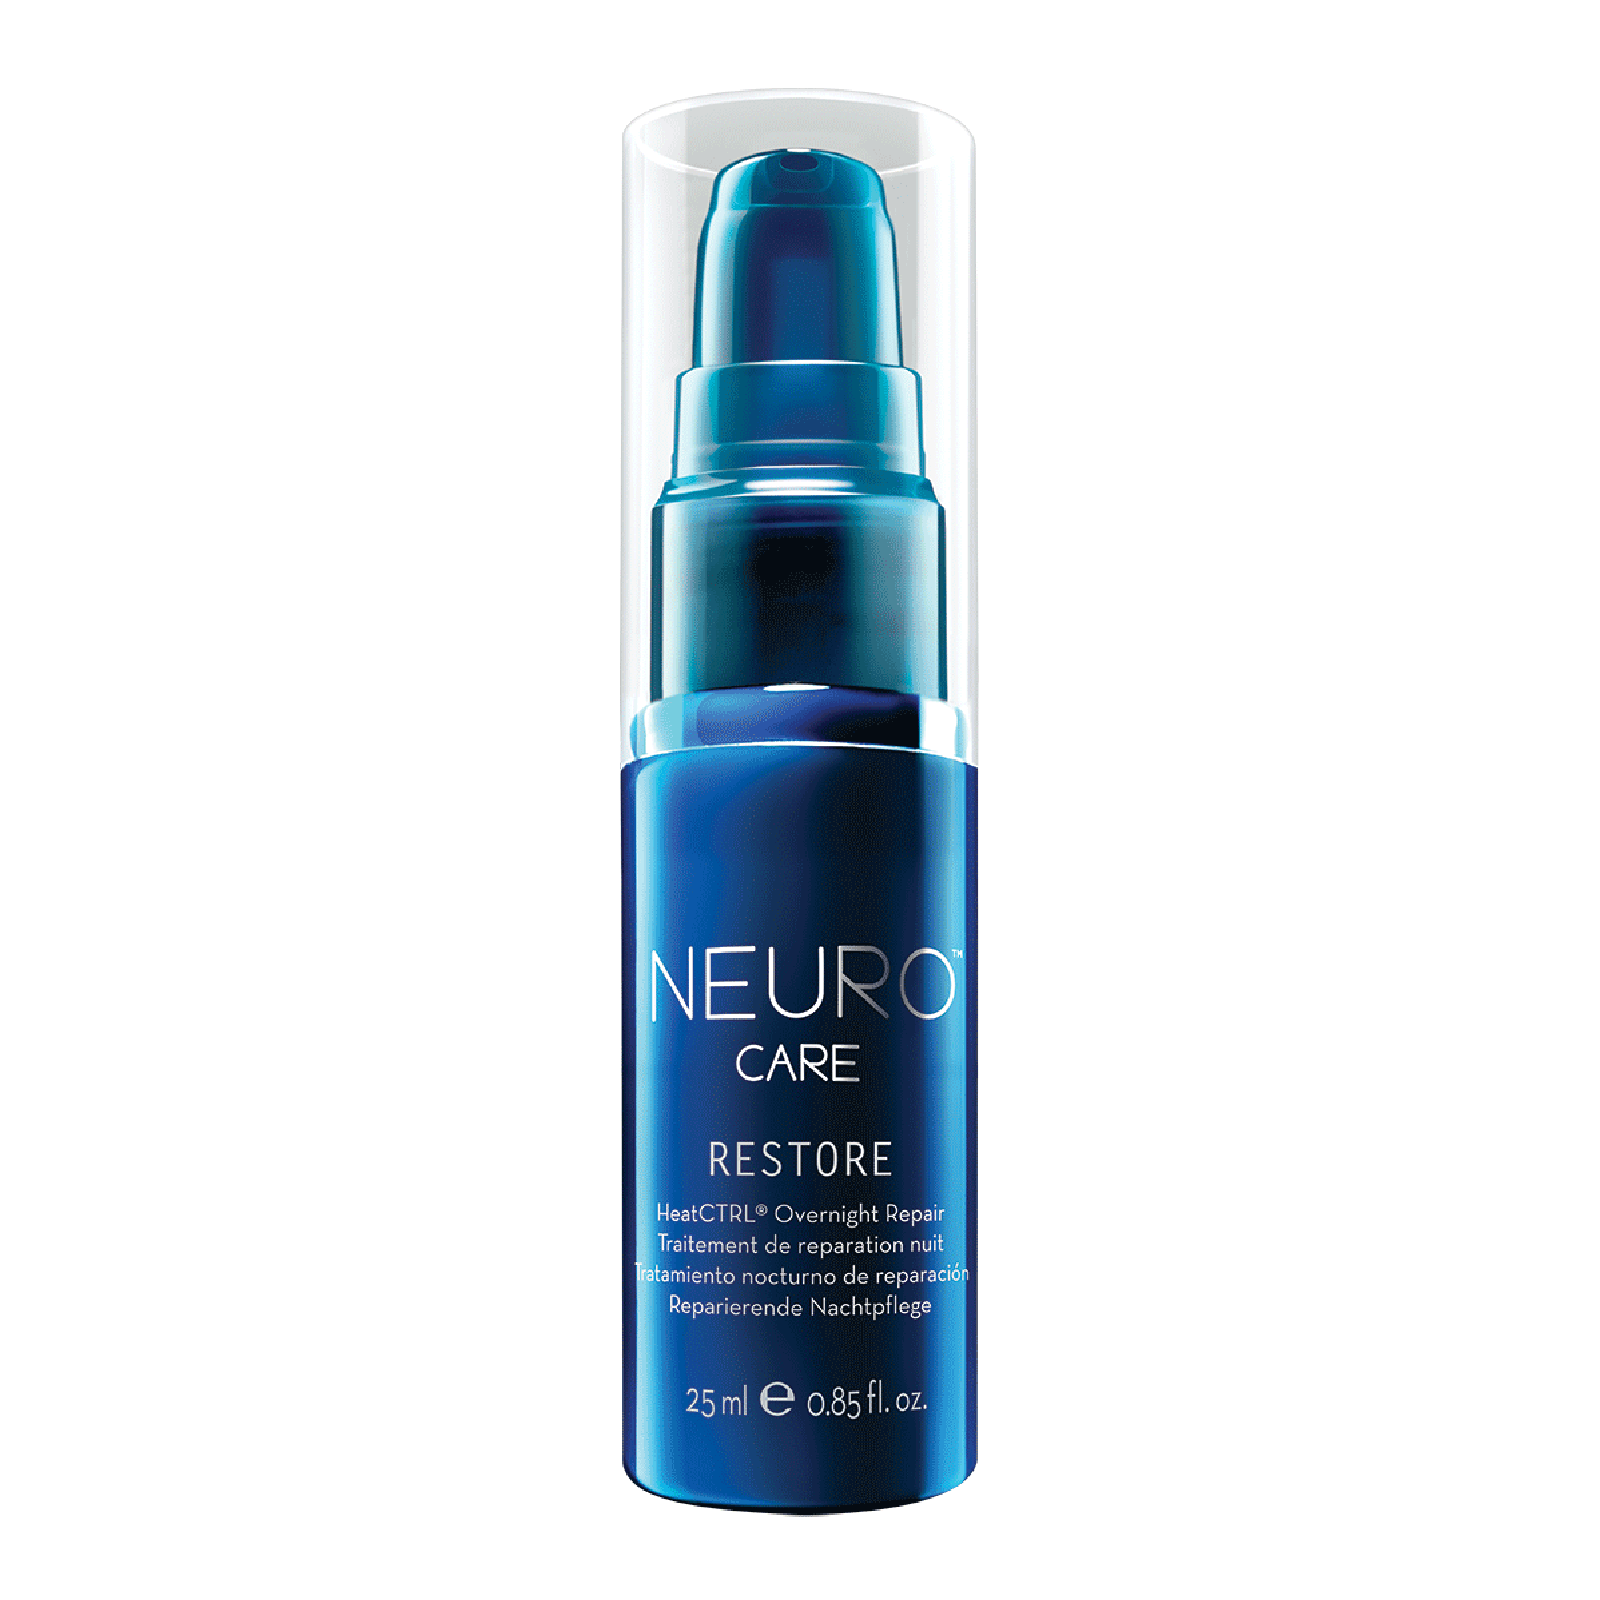 Neuro Restore - HeatCTRL Overnight Repair